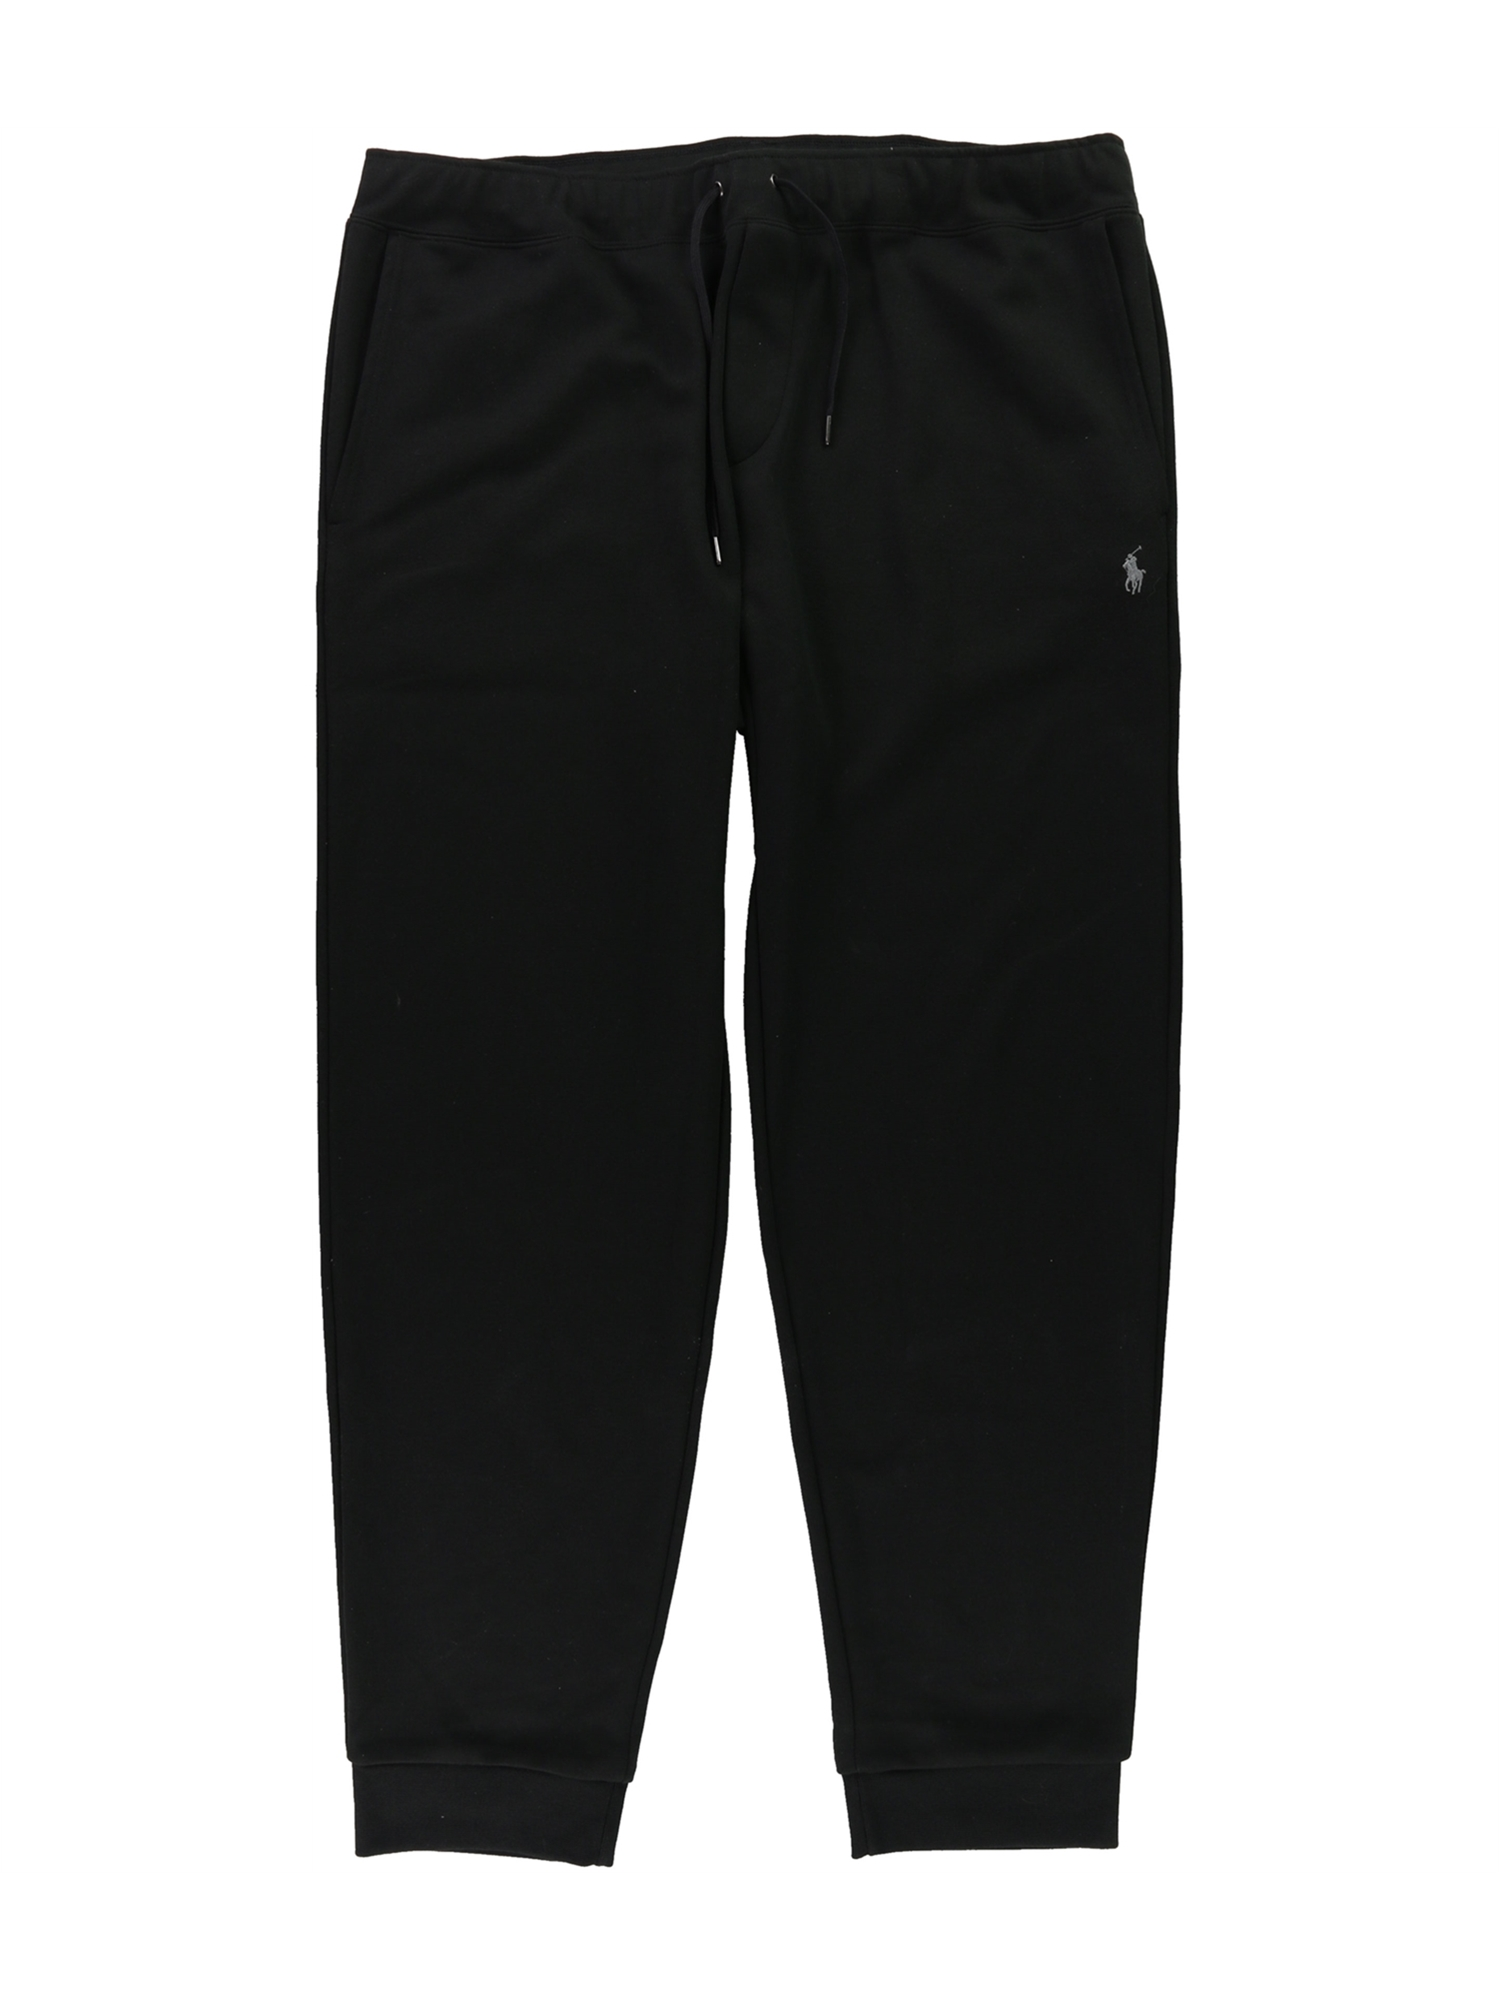 Ralph Lauren Mens Double Knit Casual Jogger Pants